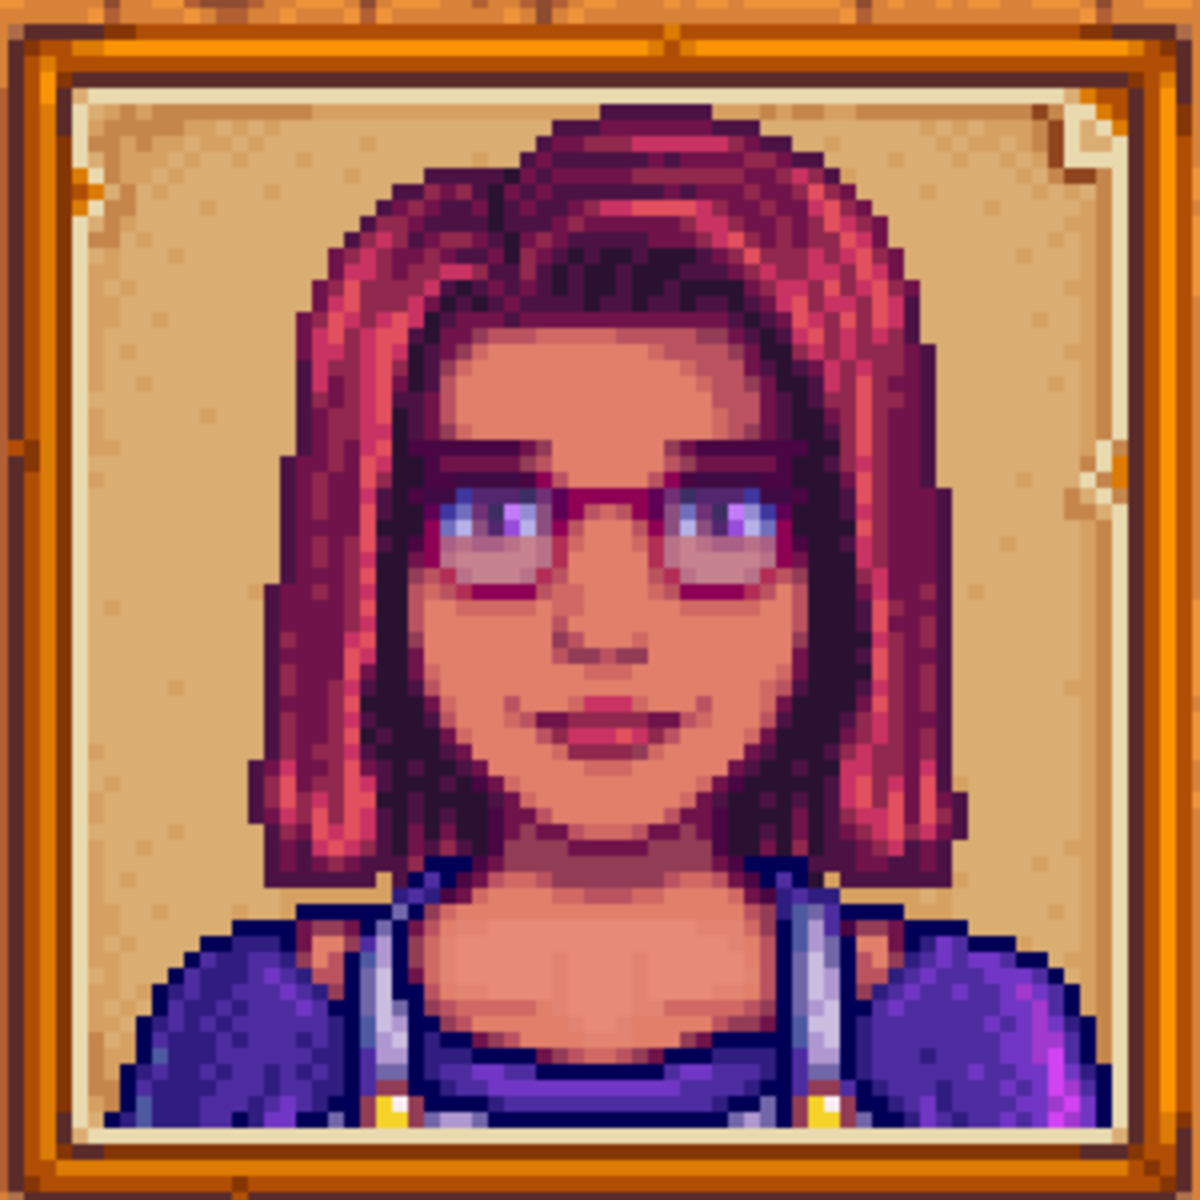 Stardew Valley Bachelorette Reference Guide Levelskip Video Games He might actually be the only character in stardew valley i. stardew valley bachelorette reference